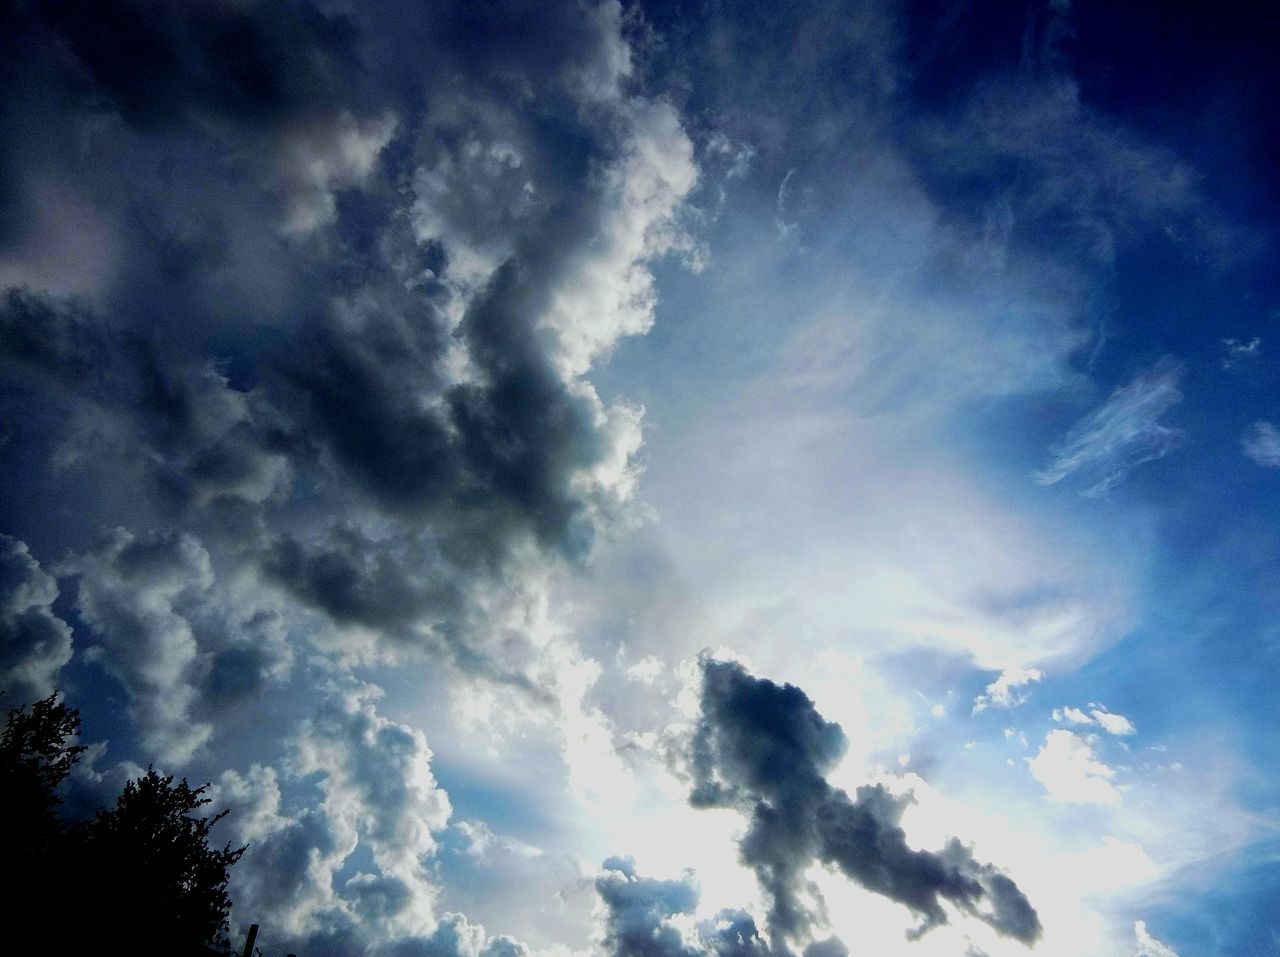 sky, cloud - sky, low angle view, nature, beauty in nature, no people, scenics, day, outdoors, tranquility, blue, tree